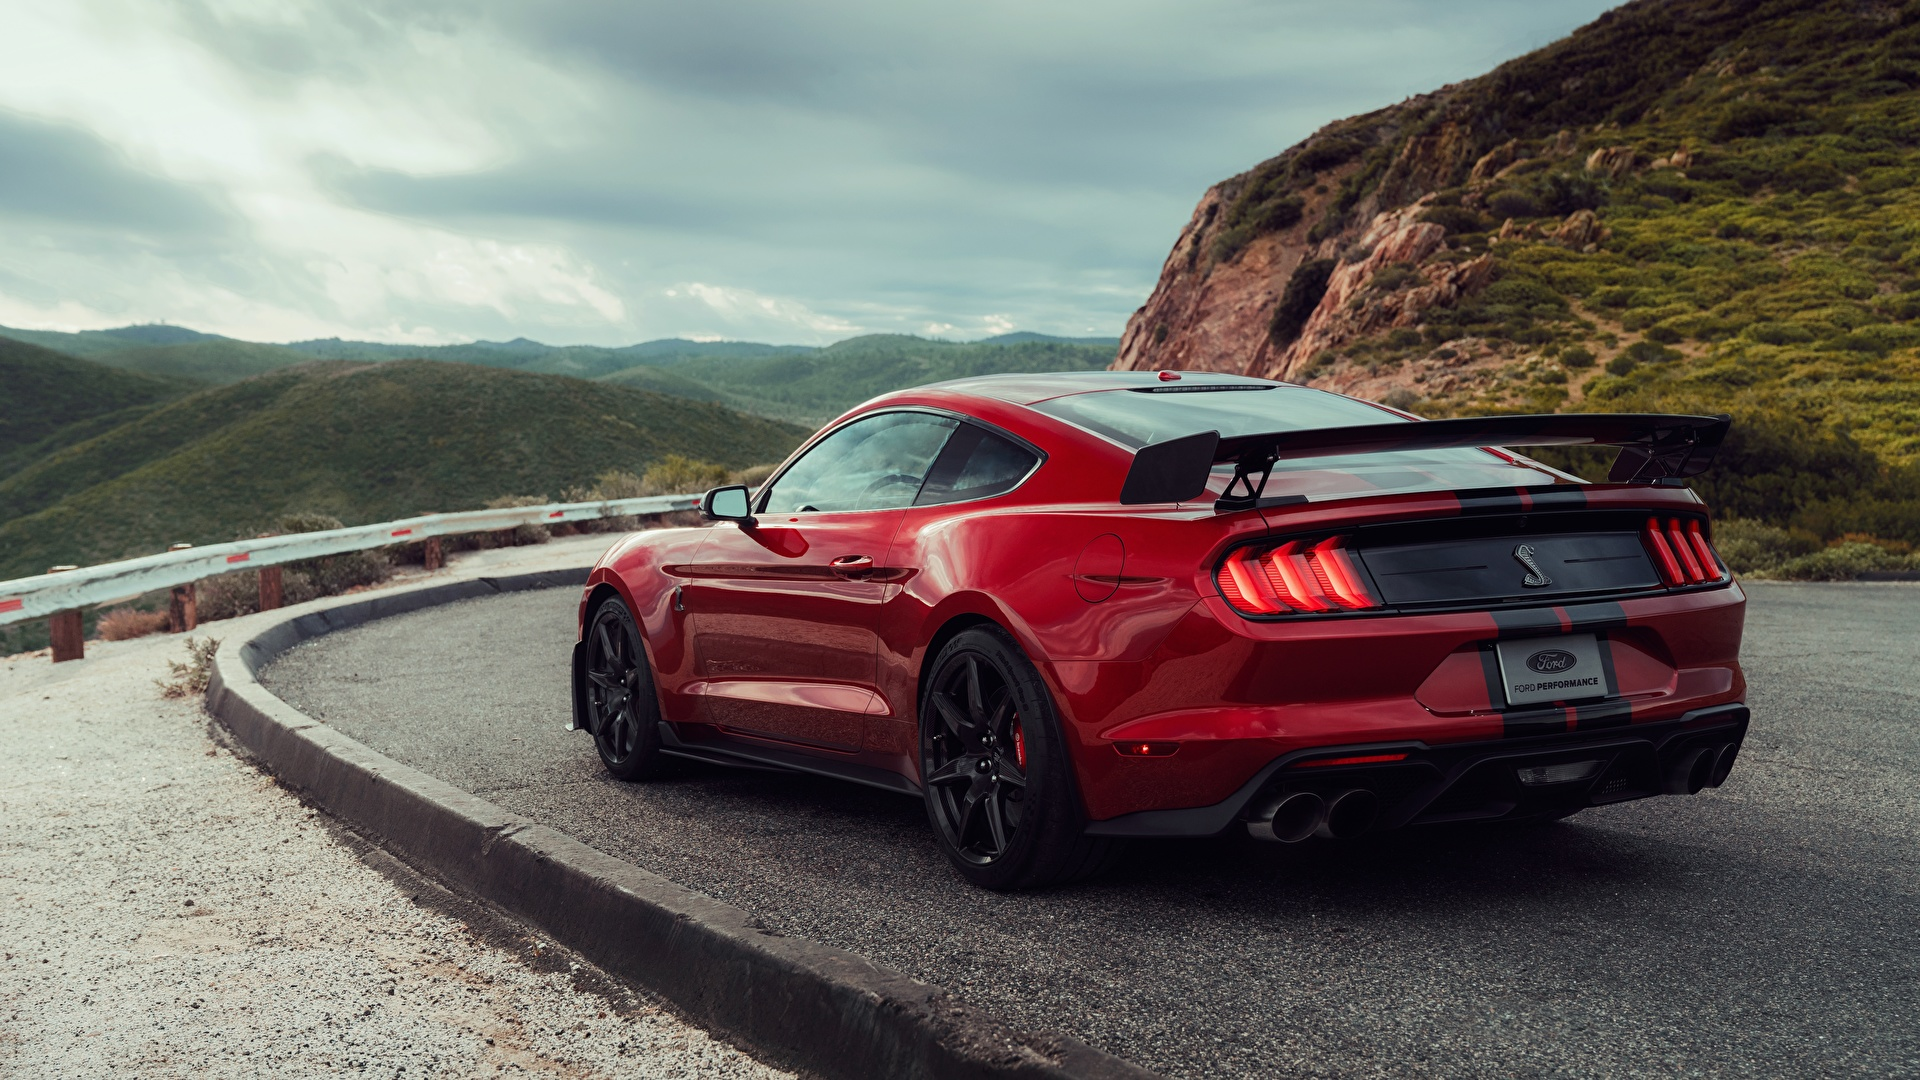 Desktop Wallpapers Ford Mustang Shelby GT500 2019 Red Cars 1920x1080